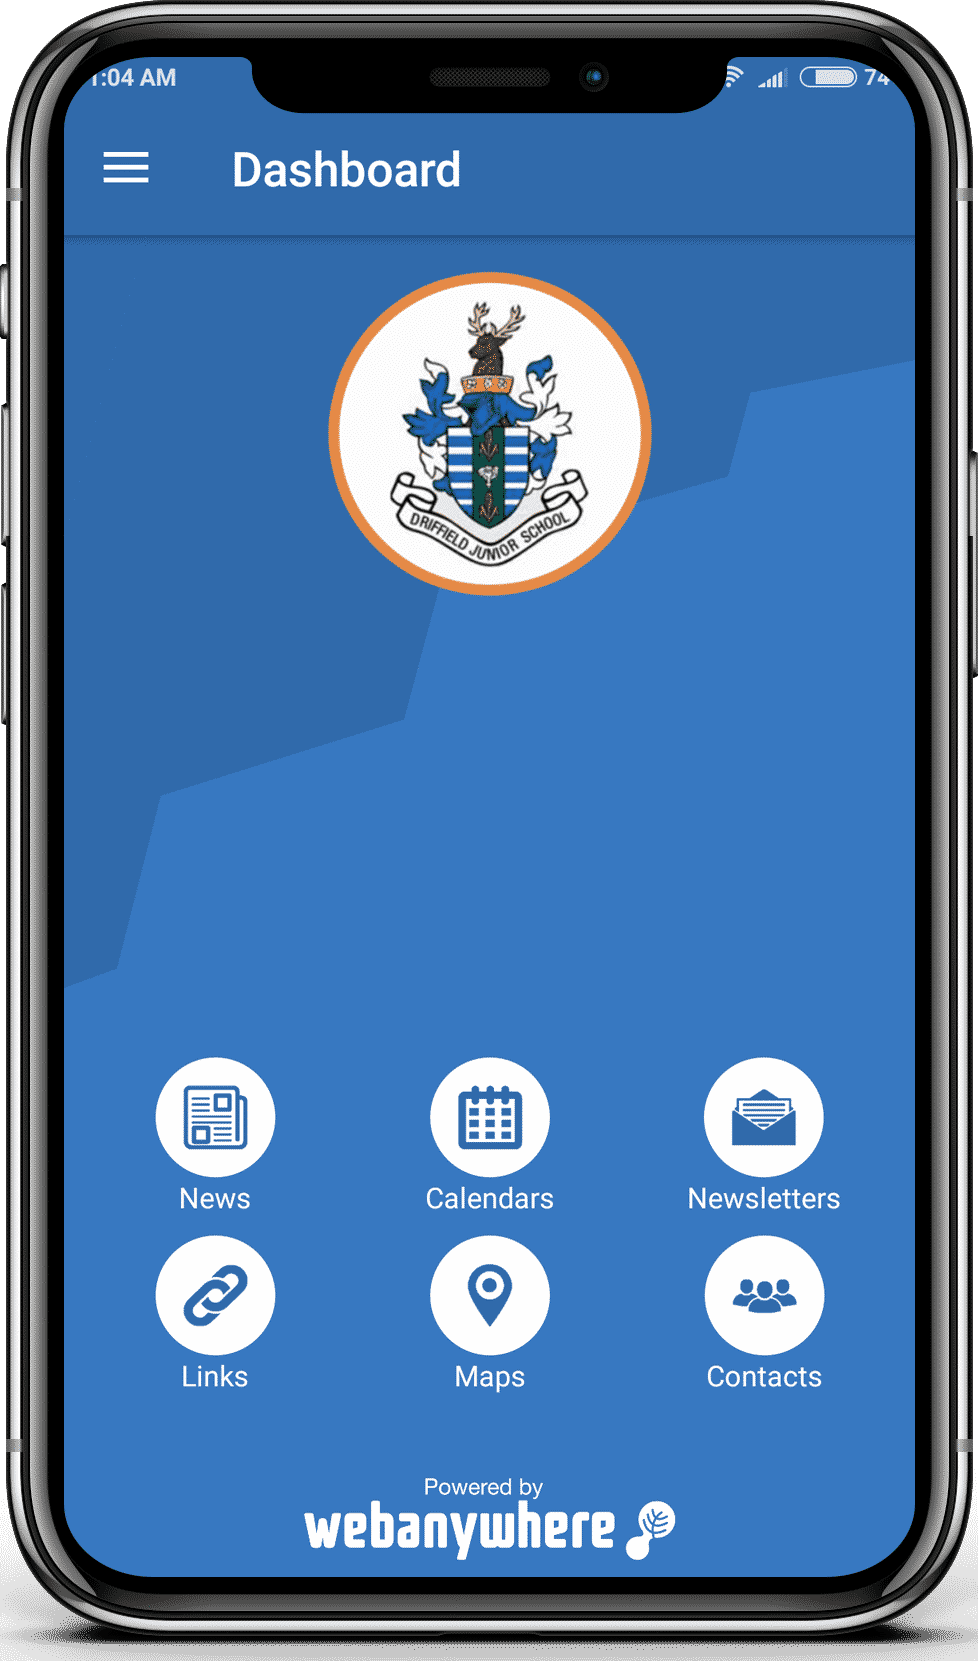 Driffield Junior school mobile app